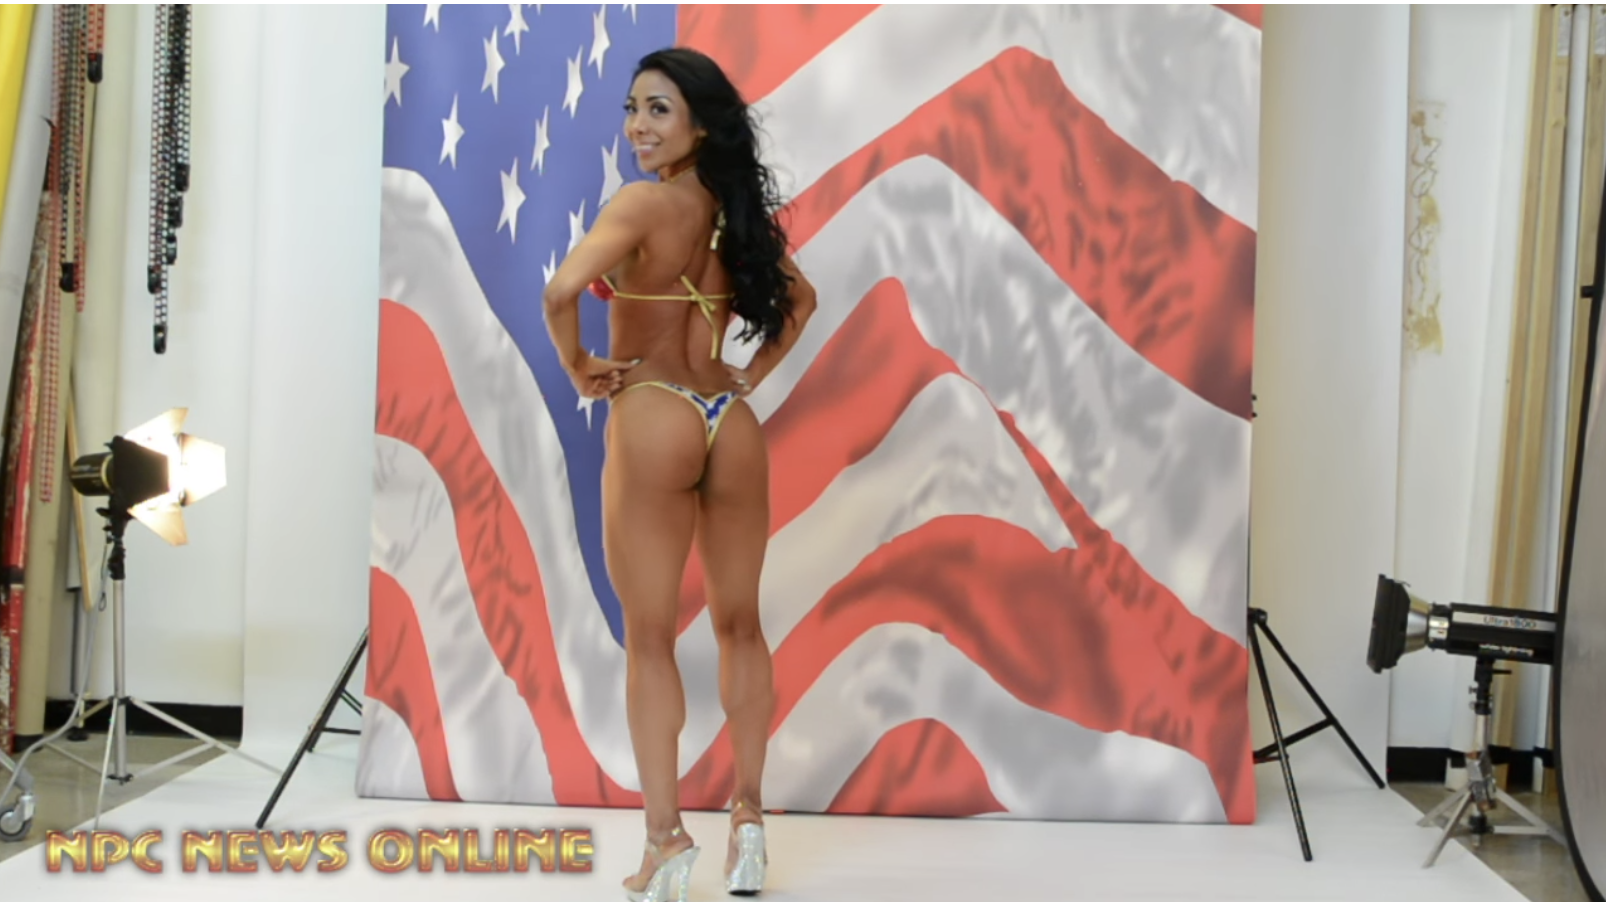 IFBB Bikini Competitor Eli Fernadez Behind The Scenes Photo Shoot With J.M. Manion in Pittsburgh, PA (VIDEO)